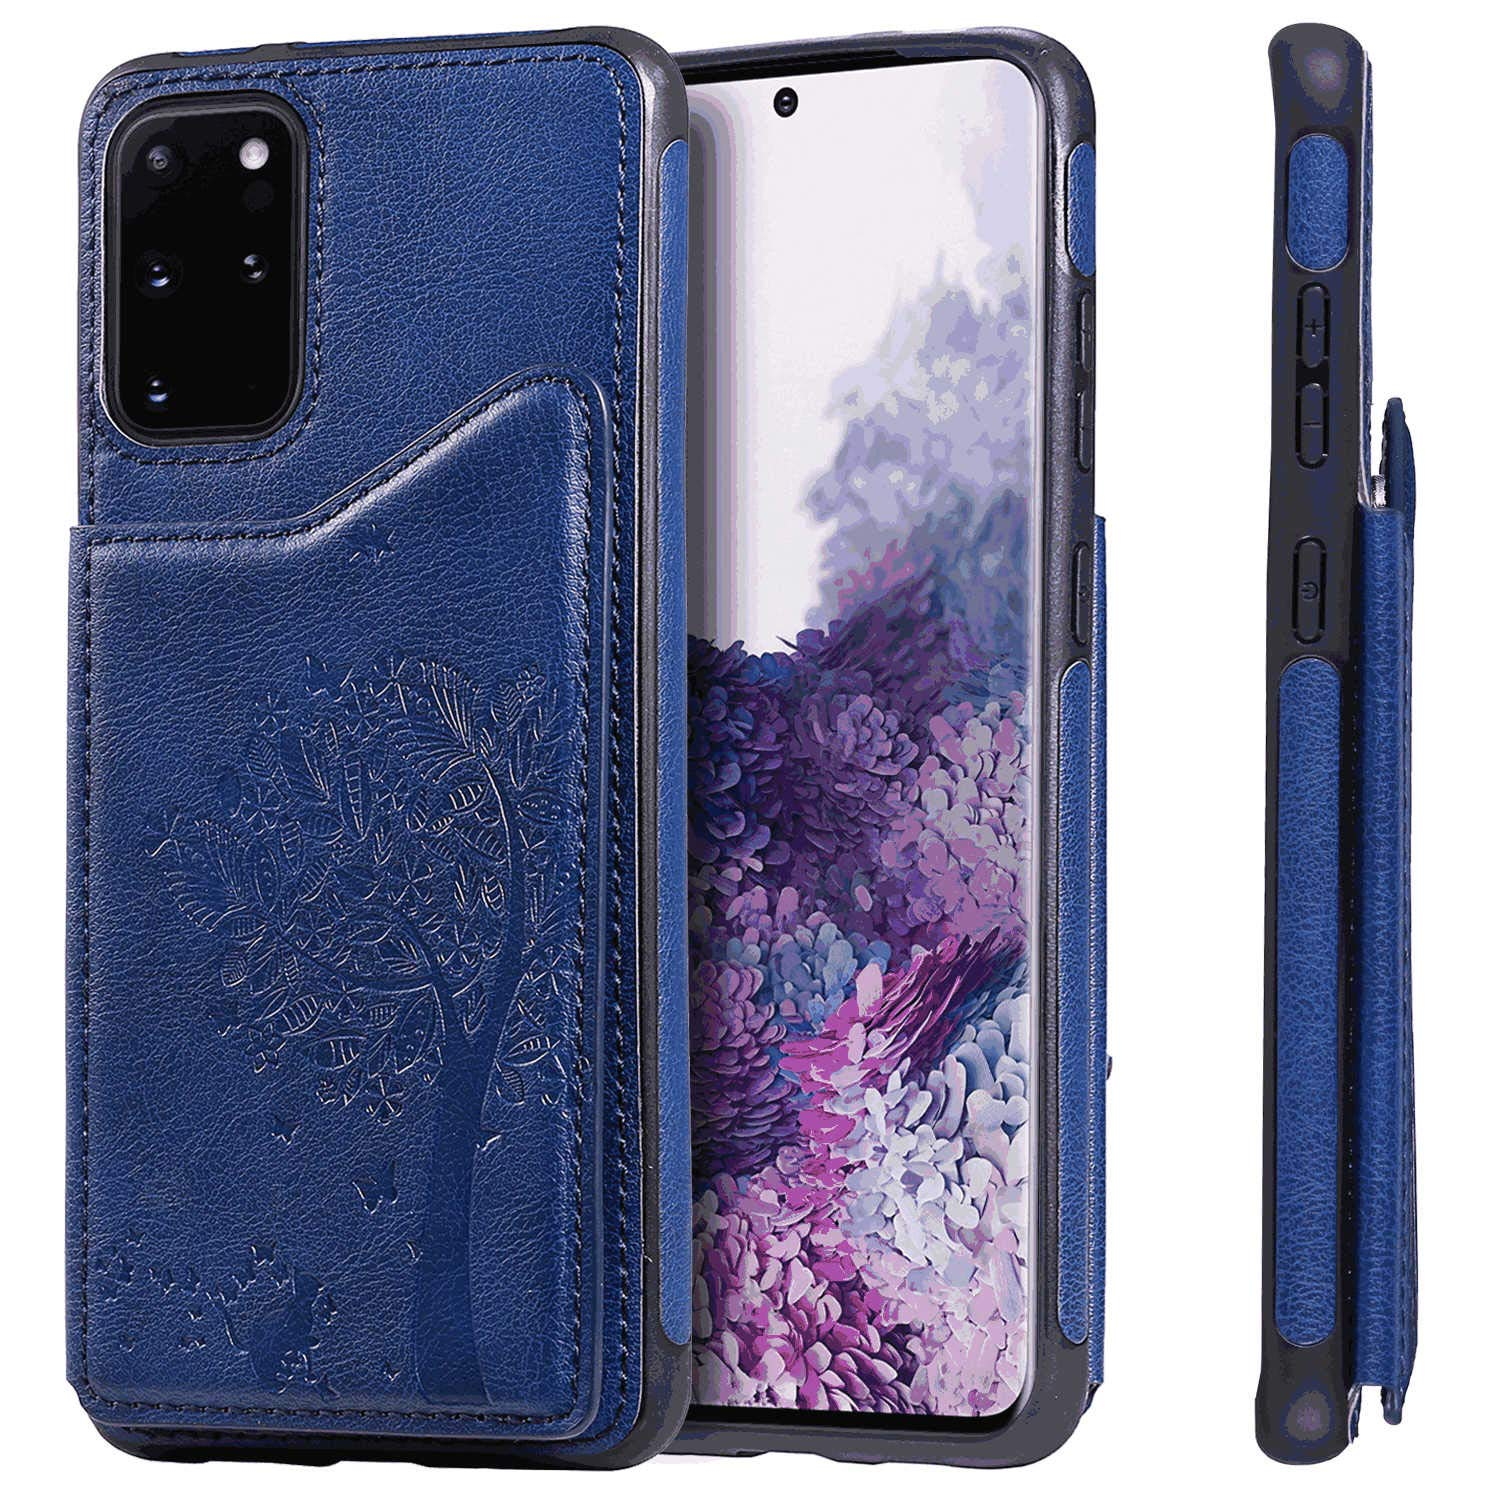 PU Leather Flip Cover Compatible with Samsung Galaxy S10, Elegant Blue Wallet Case for Samsung Galaxy S10